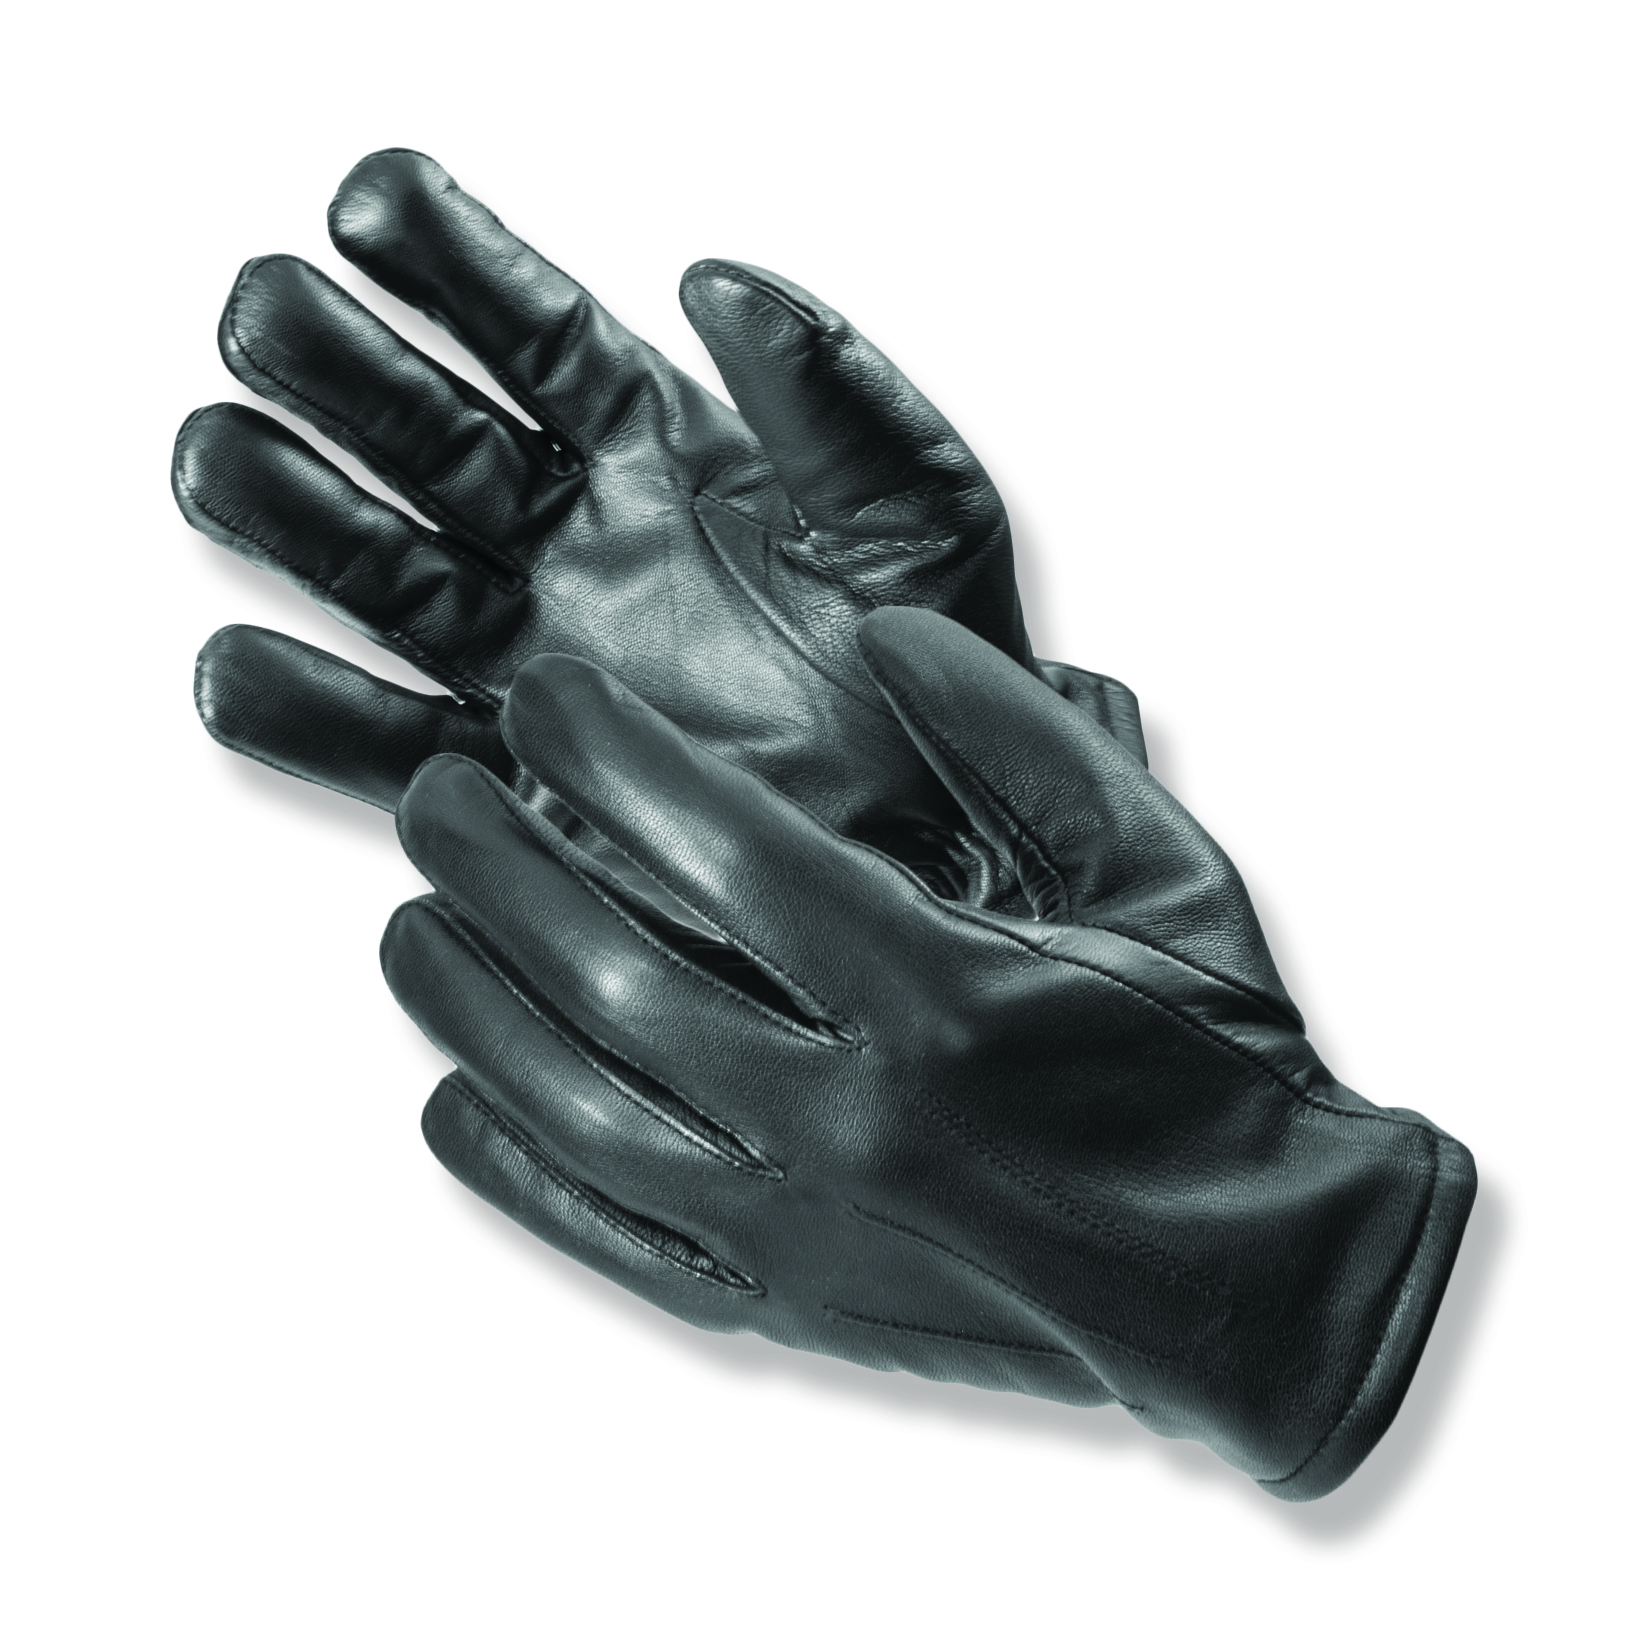 100% top quality leather Captain™ Winter Uniform Gloves are lined with 40 gram Thinsulate